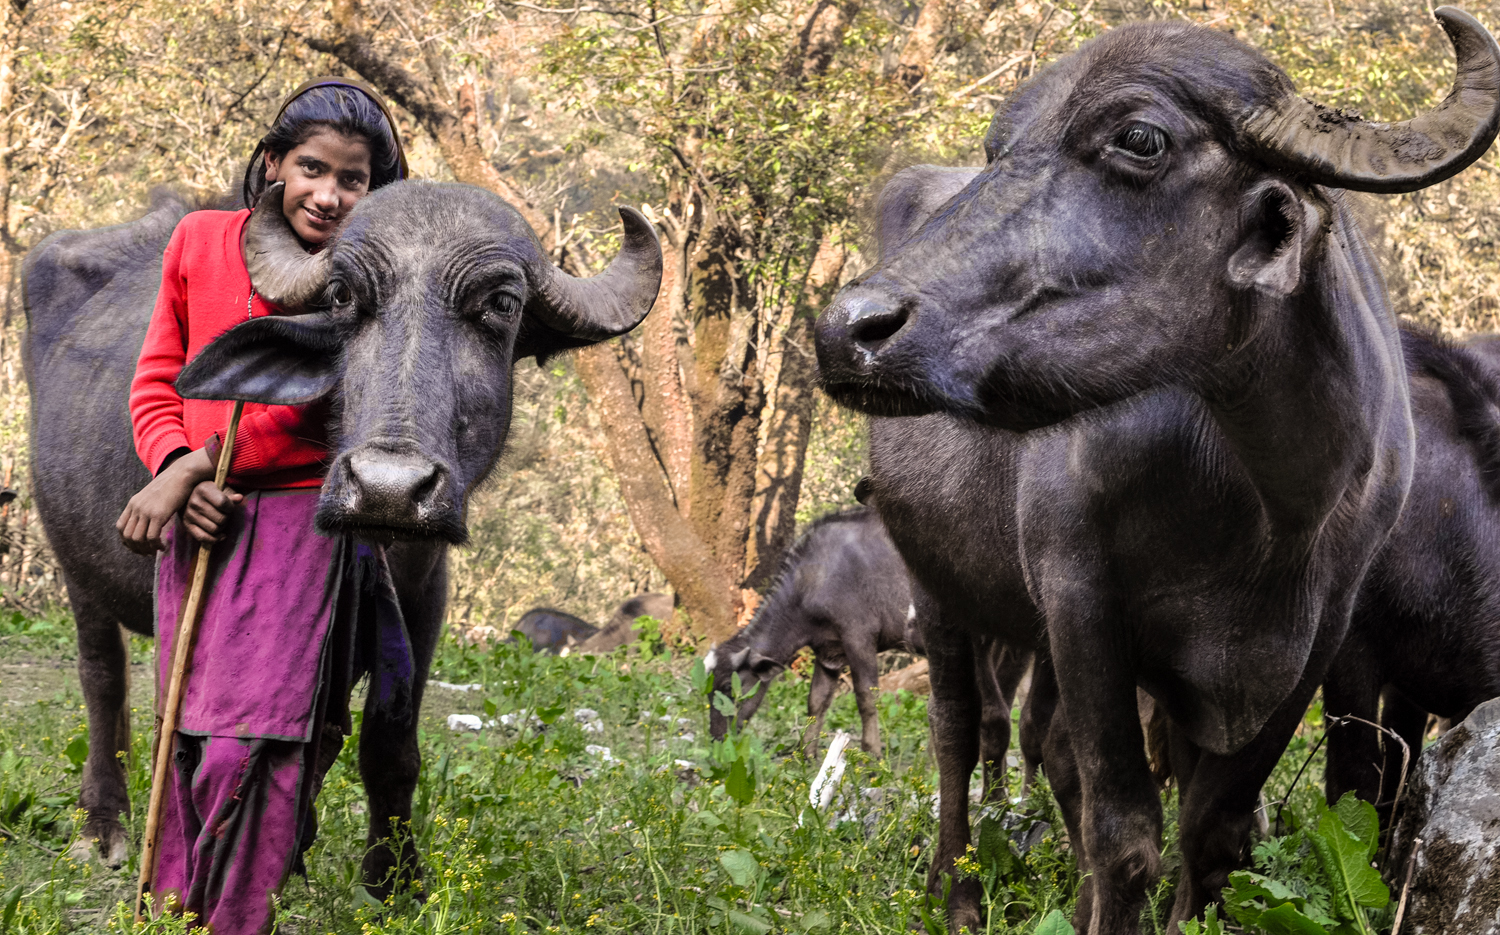 Van Gujjars have deep personal relationships with their buffaloes, thinking of them as family members. They would never dream of killing their animals for meat, or selling them for slaughter.